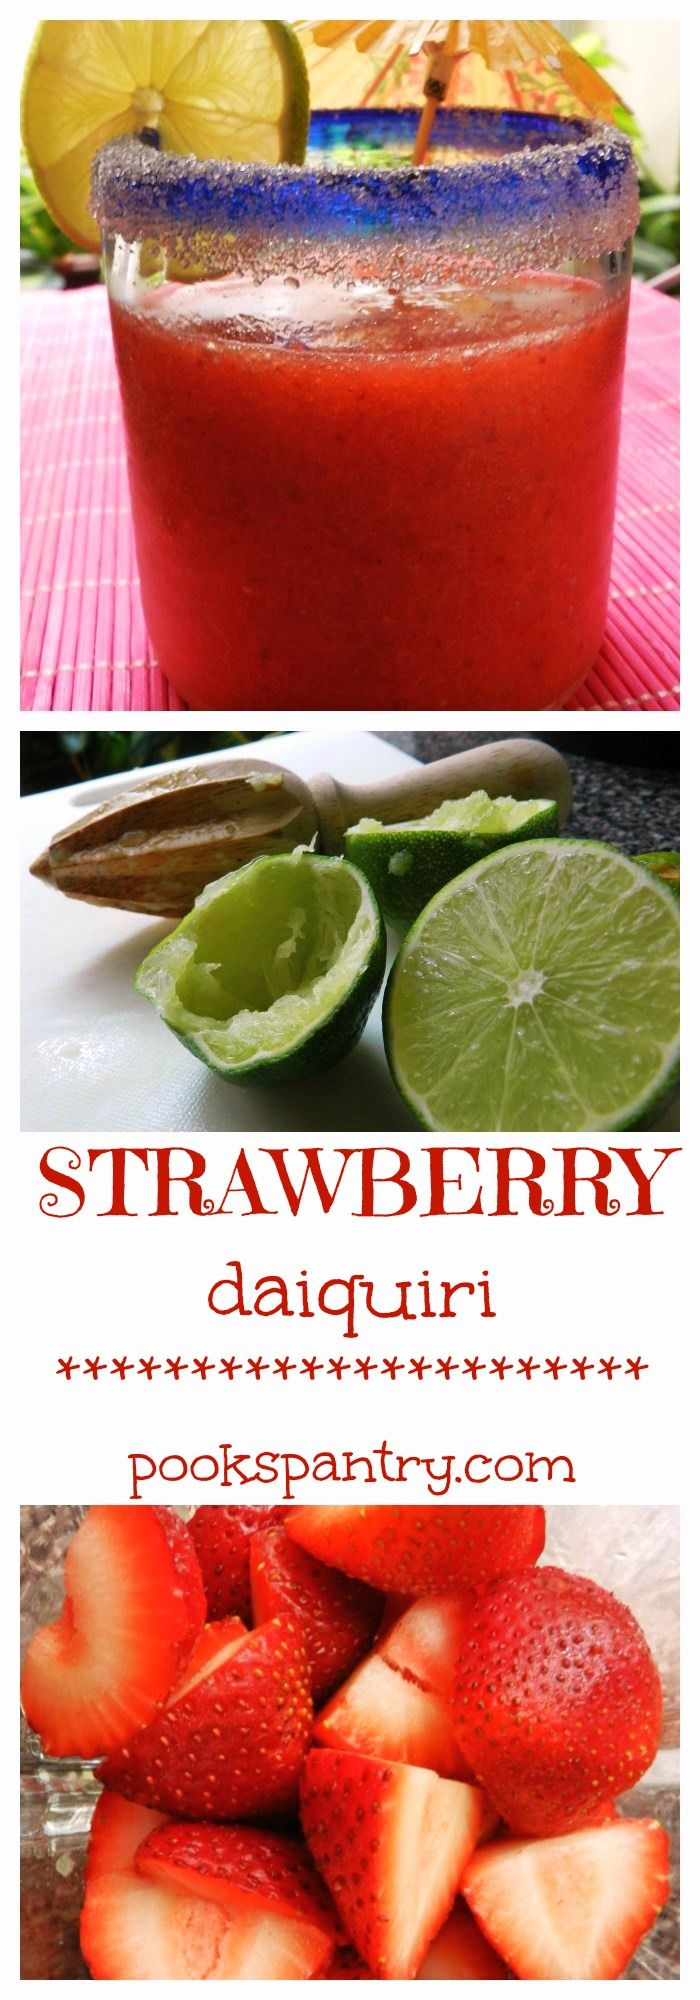 Delicious Strawberry Daiquiris made from only FRESH ingredients!!! No mixers or dyes here! #fresh #summer #drinks #strawberry